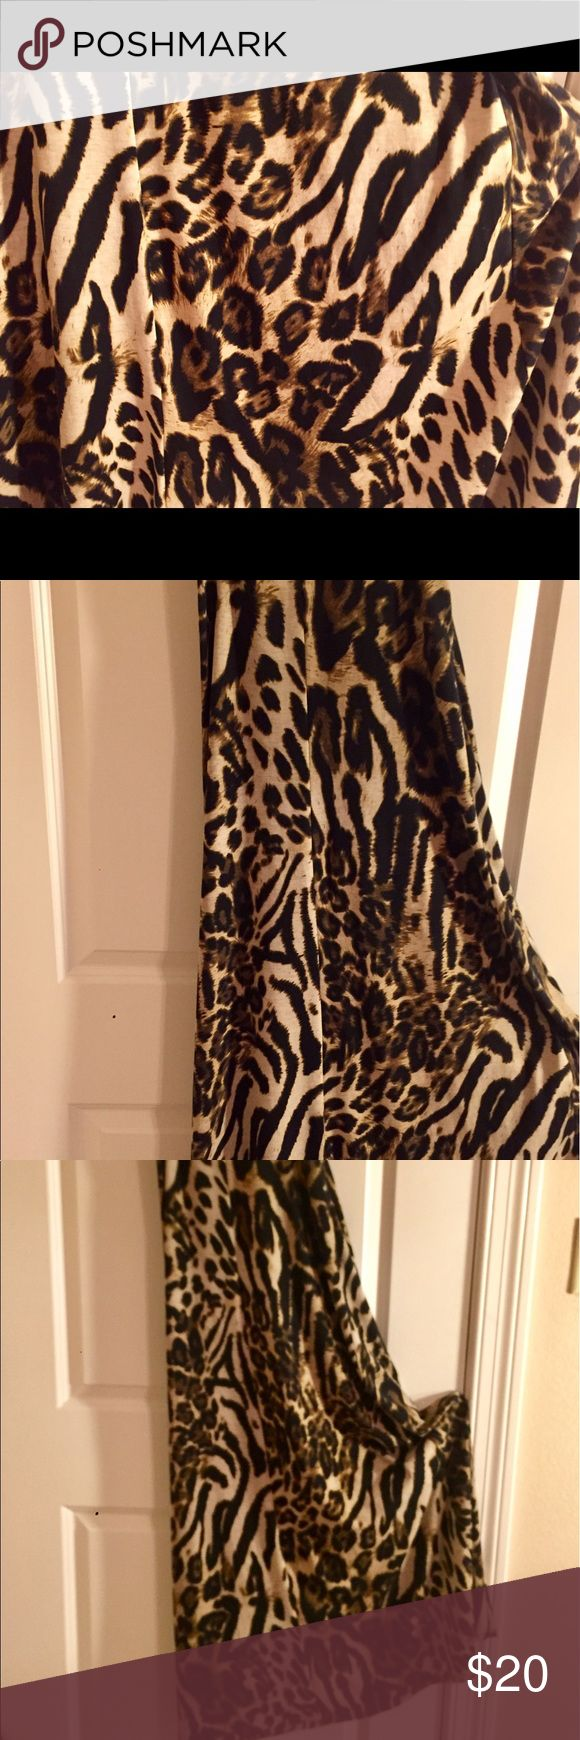 Sexy Cheetah Leopard Print Maxi Halter Dress S M Sexy Maxi Halter Dress. Cheetah Leopard Animal Print. No tags. This will fit both women's SMALL & MEDIUM (it has some give to it.) If you're a curvy small or if you're a medium who wants the eye to cling to your feminine features 😘 it should work nicely. Flattering, slenderizing, comfortable, & made even MY booty look great! (I never wore it out. Only tried it on, cut off the tags & ignored it in my closet for 3 years!) Day dress to date…